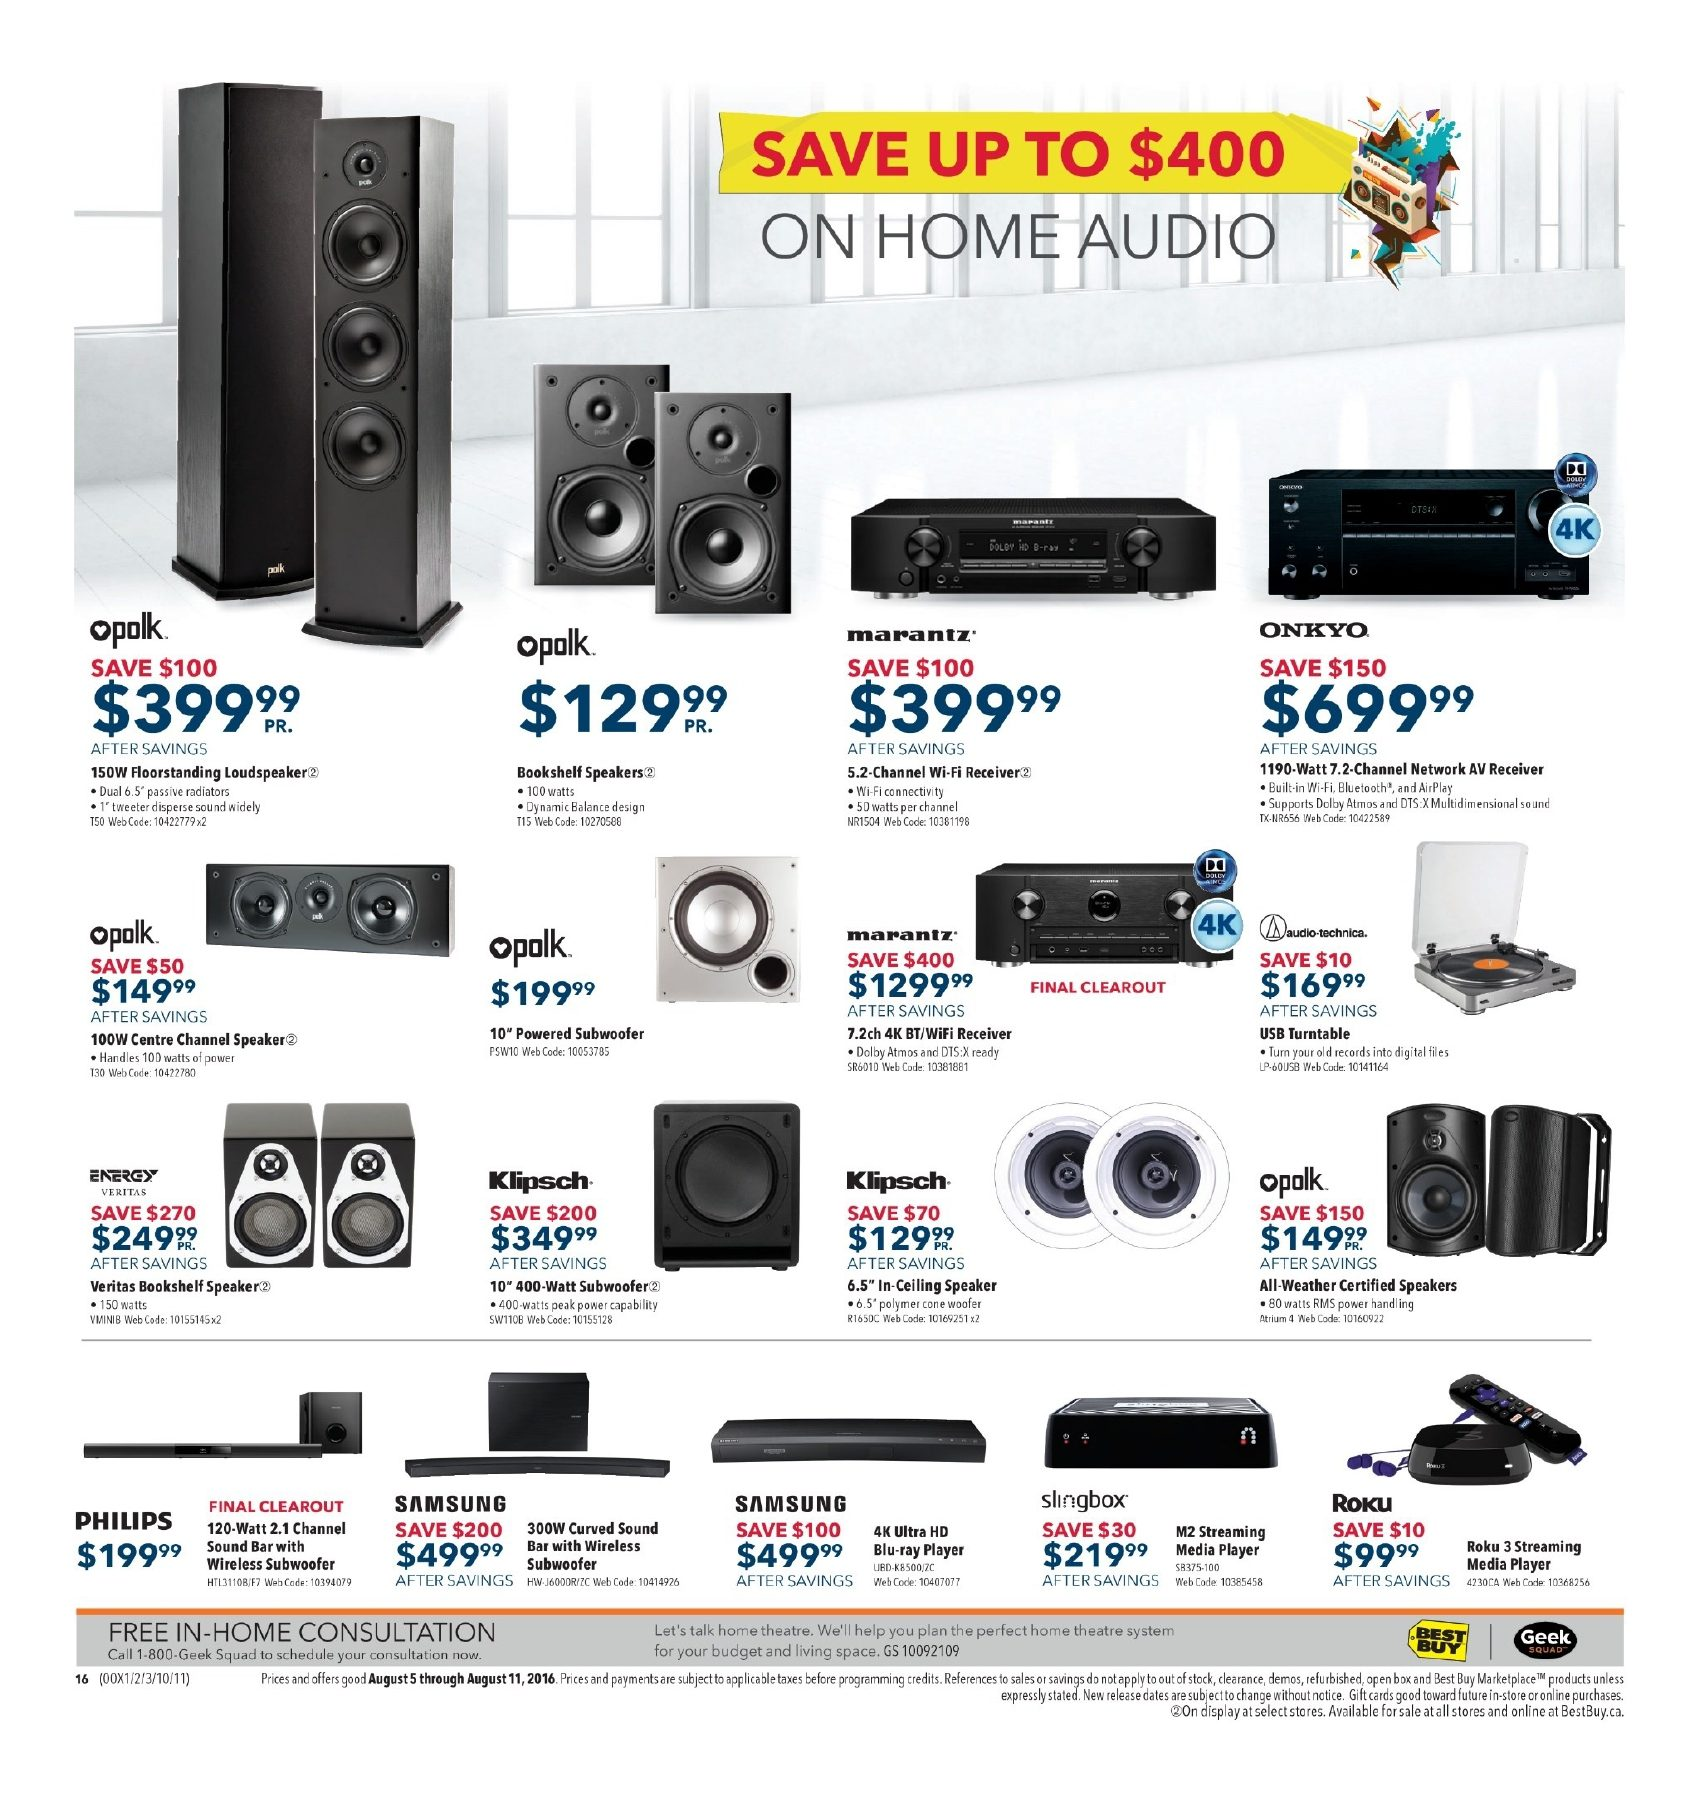 Best buy weekly flyer weekly all you need for an a school year best buy weekly flyer weekly all you need for an a school year aug 5 11 redflagdeals fandeluxe Images